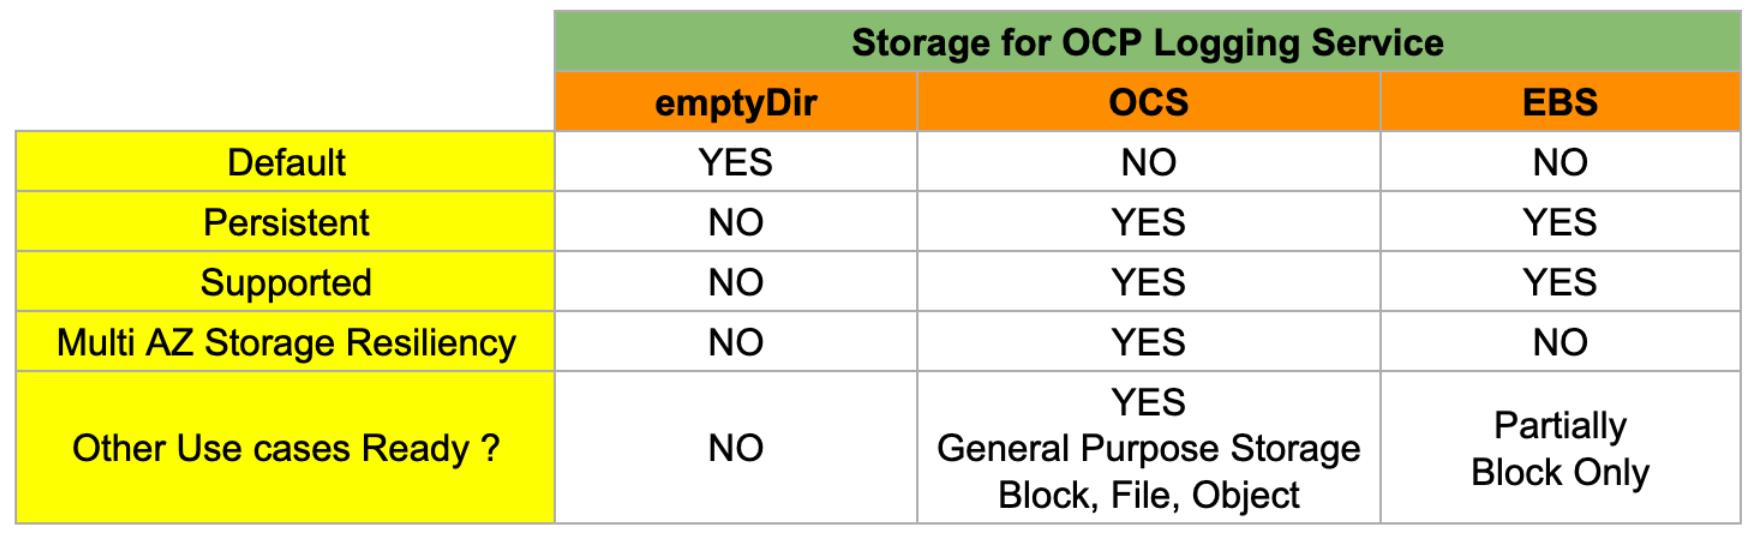 Table 3 : Storage options comparison for OpenShift Logging Service